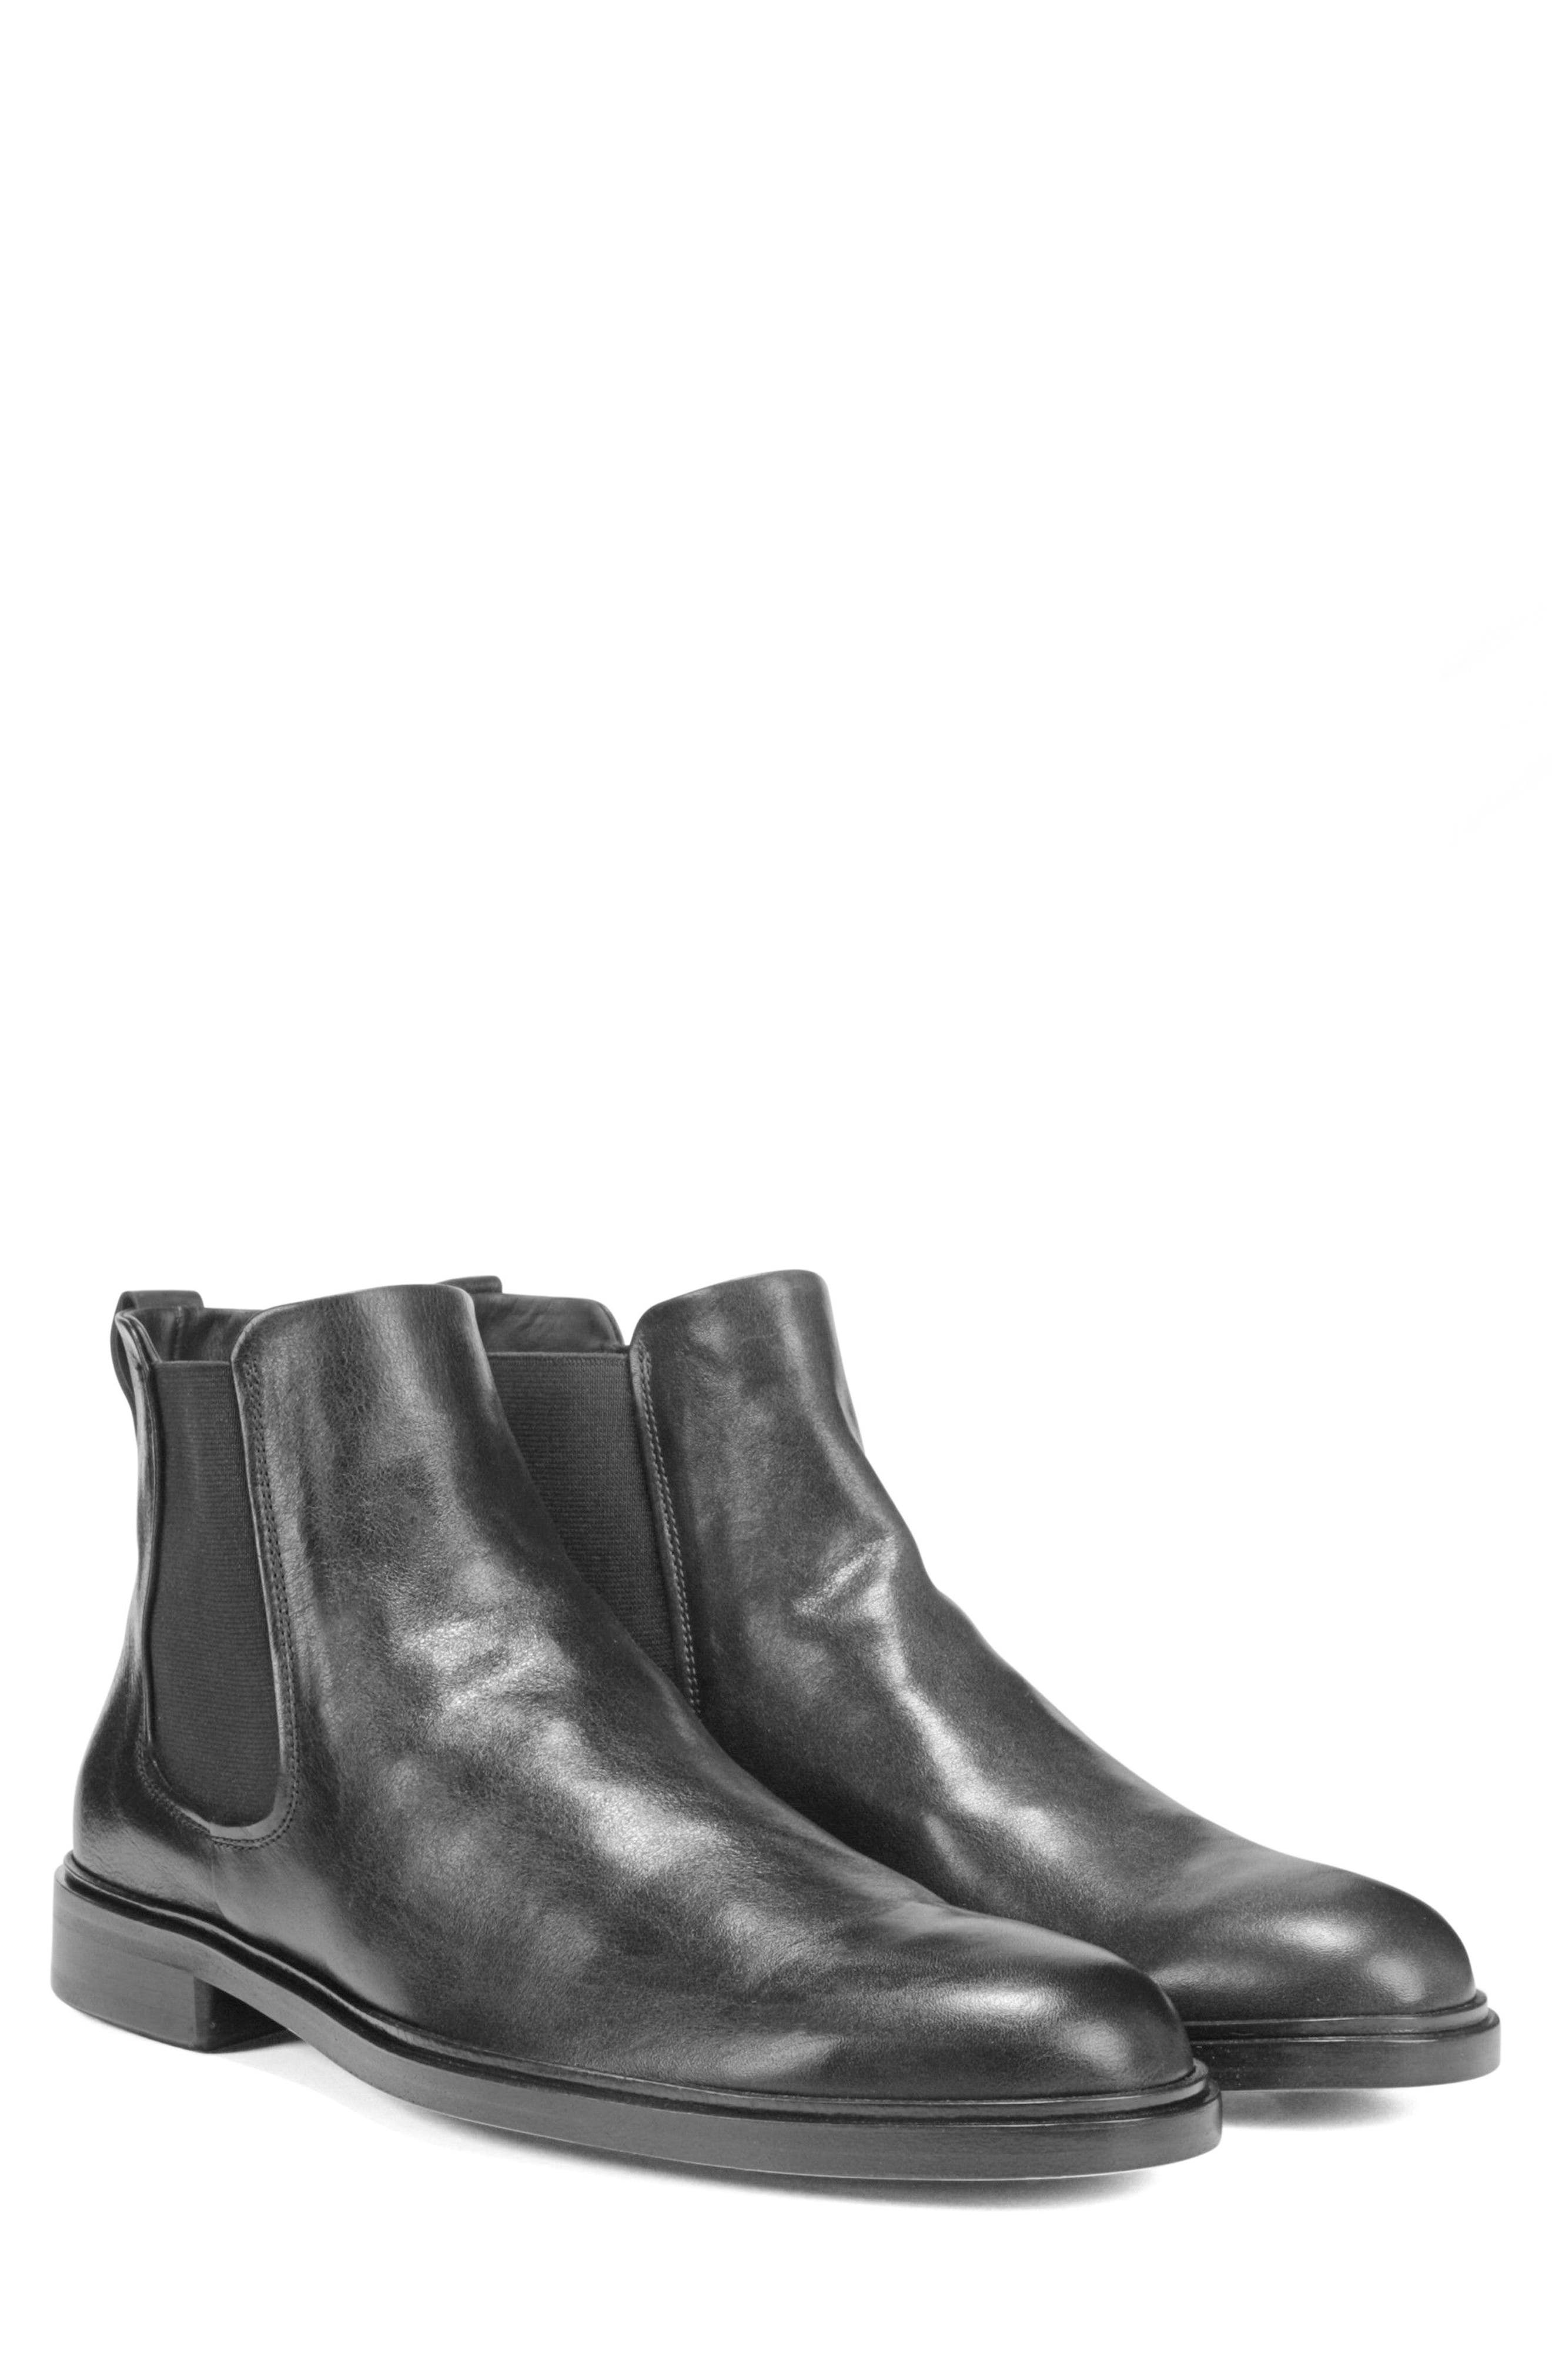 VINCE,                             Burroughs Chelsea Boot,                             Alternate thumbnail 7, color,                             BLACK